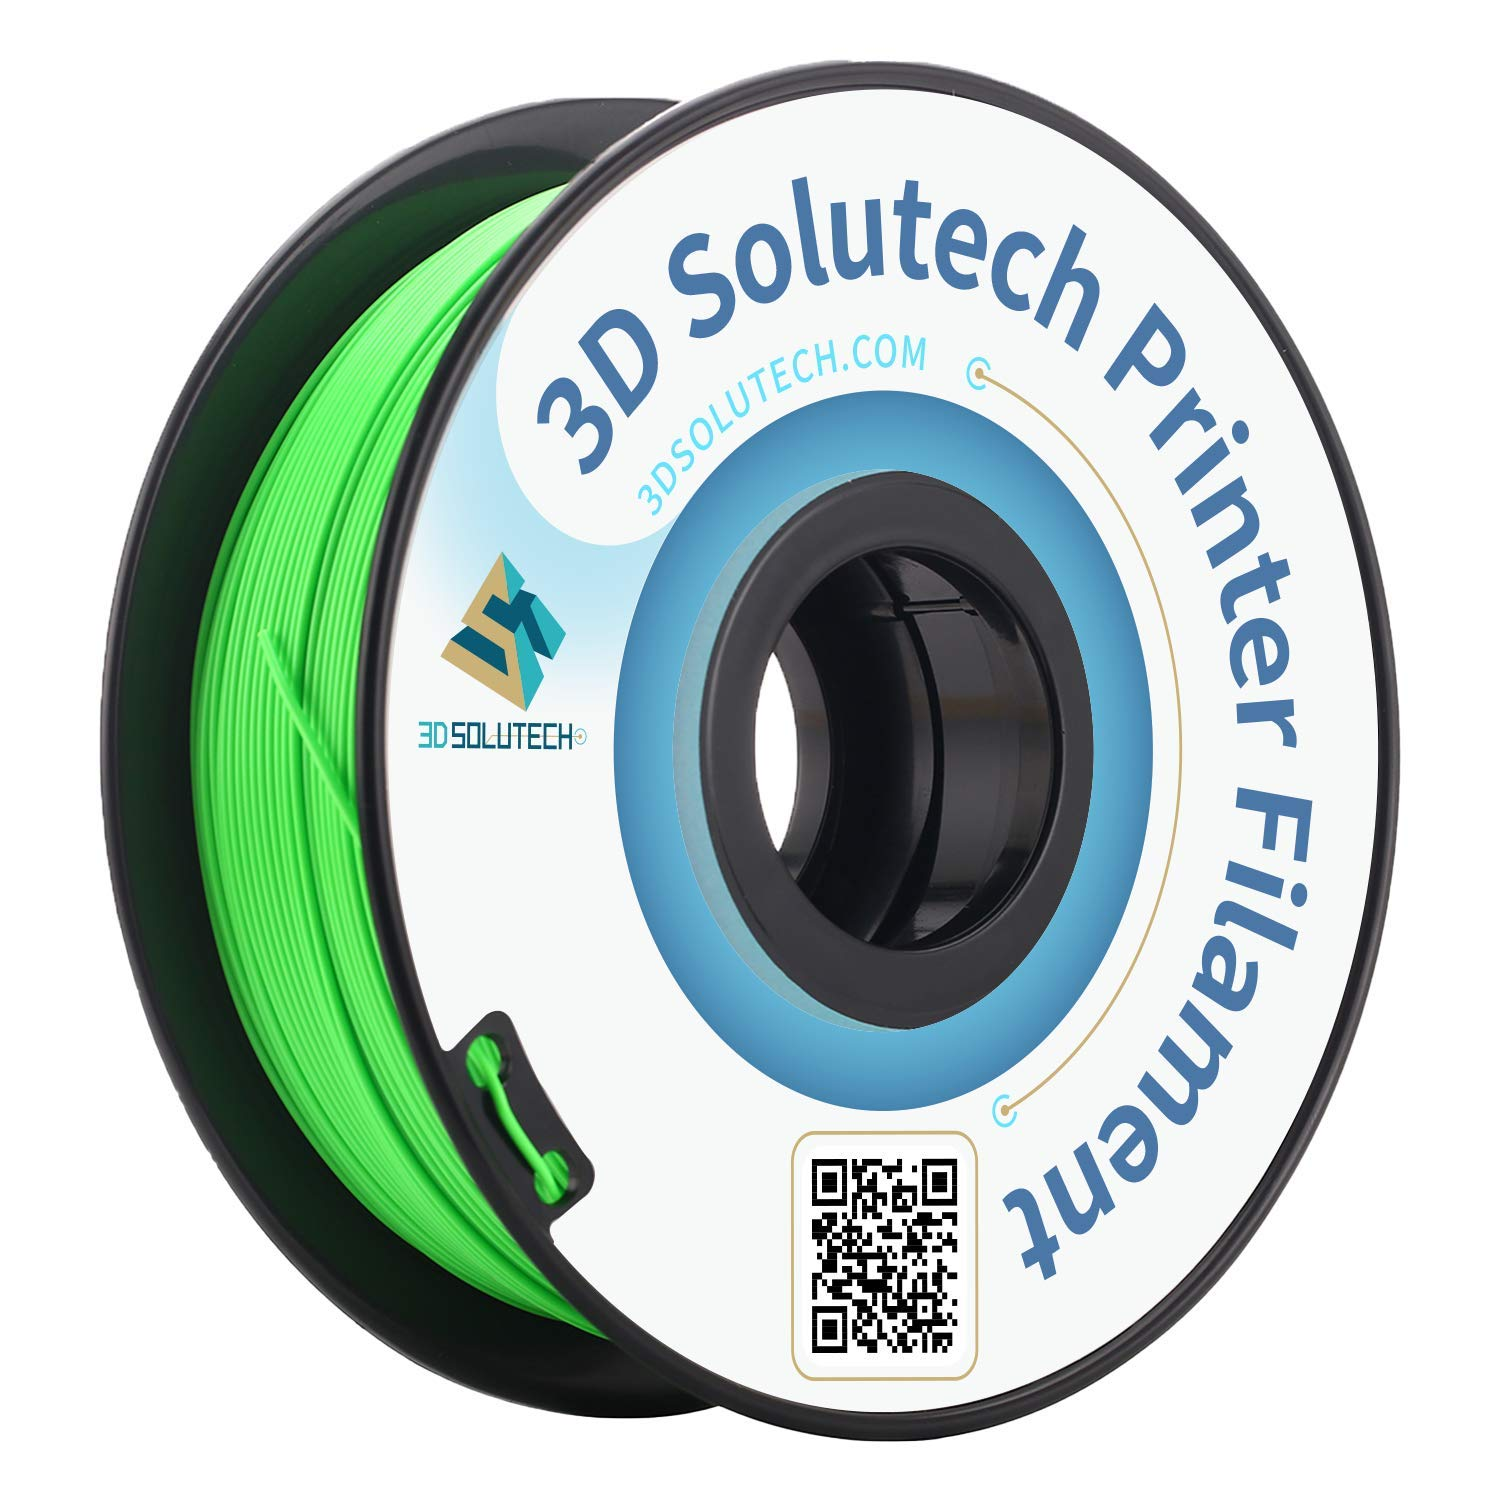 3D Solutech Apple Green 3D Printer PLA Filament 1.75MM Filament, Dimensional Accuracy +/- 0.03 mm, 2.2 LBS (1.0KG) - PLA175RGR